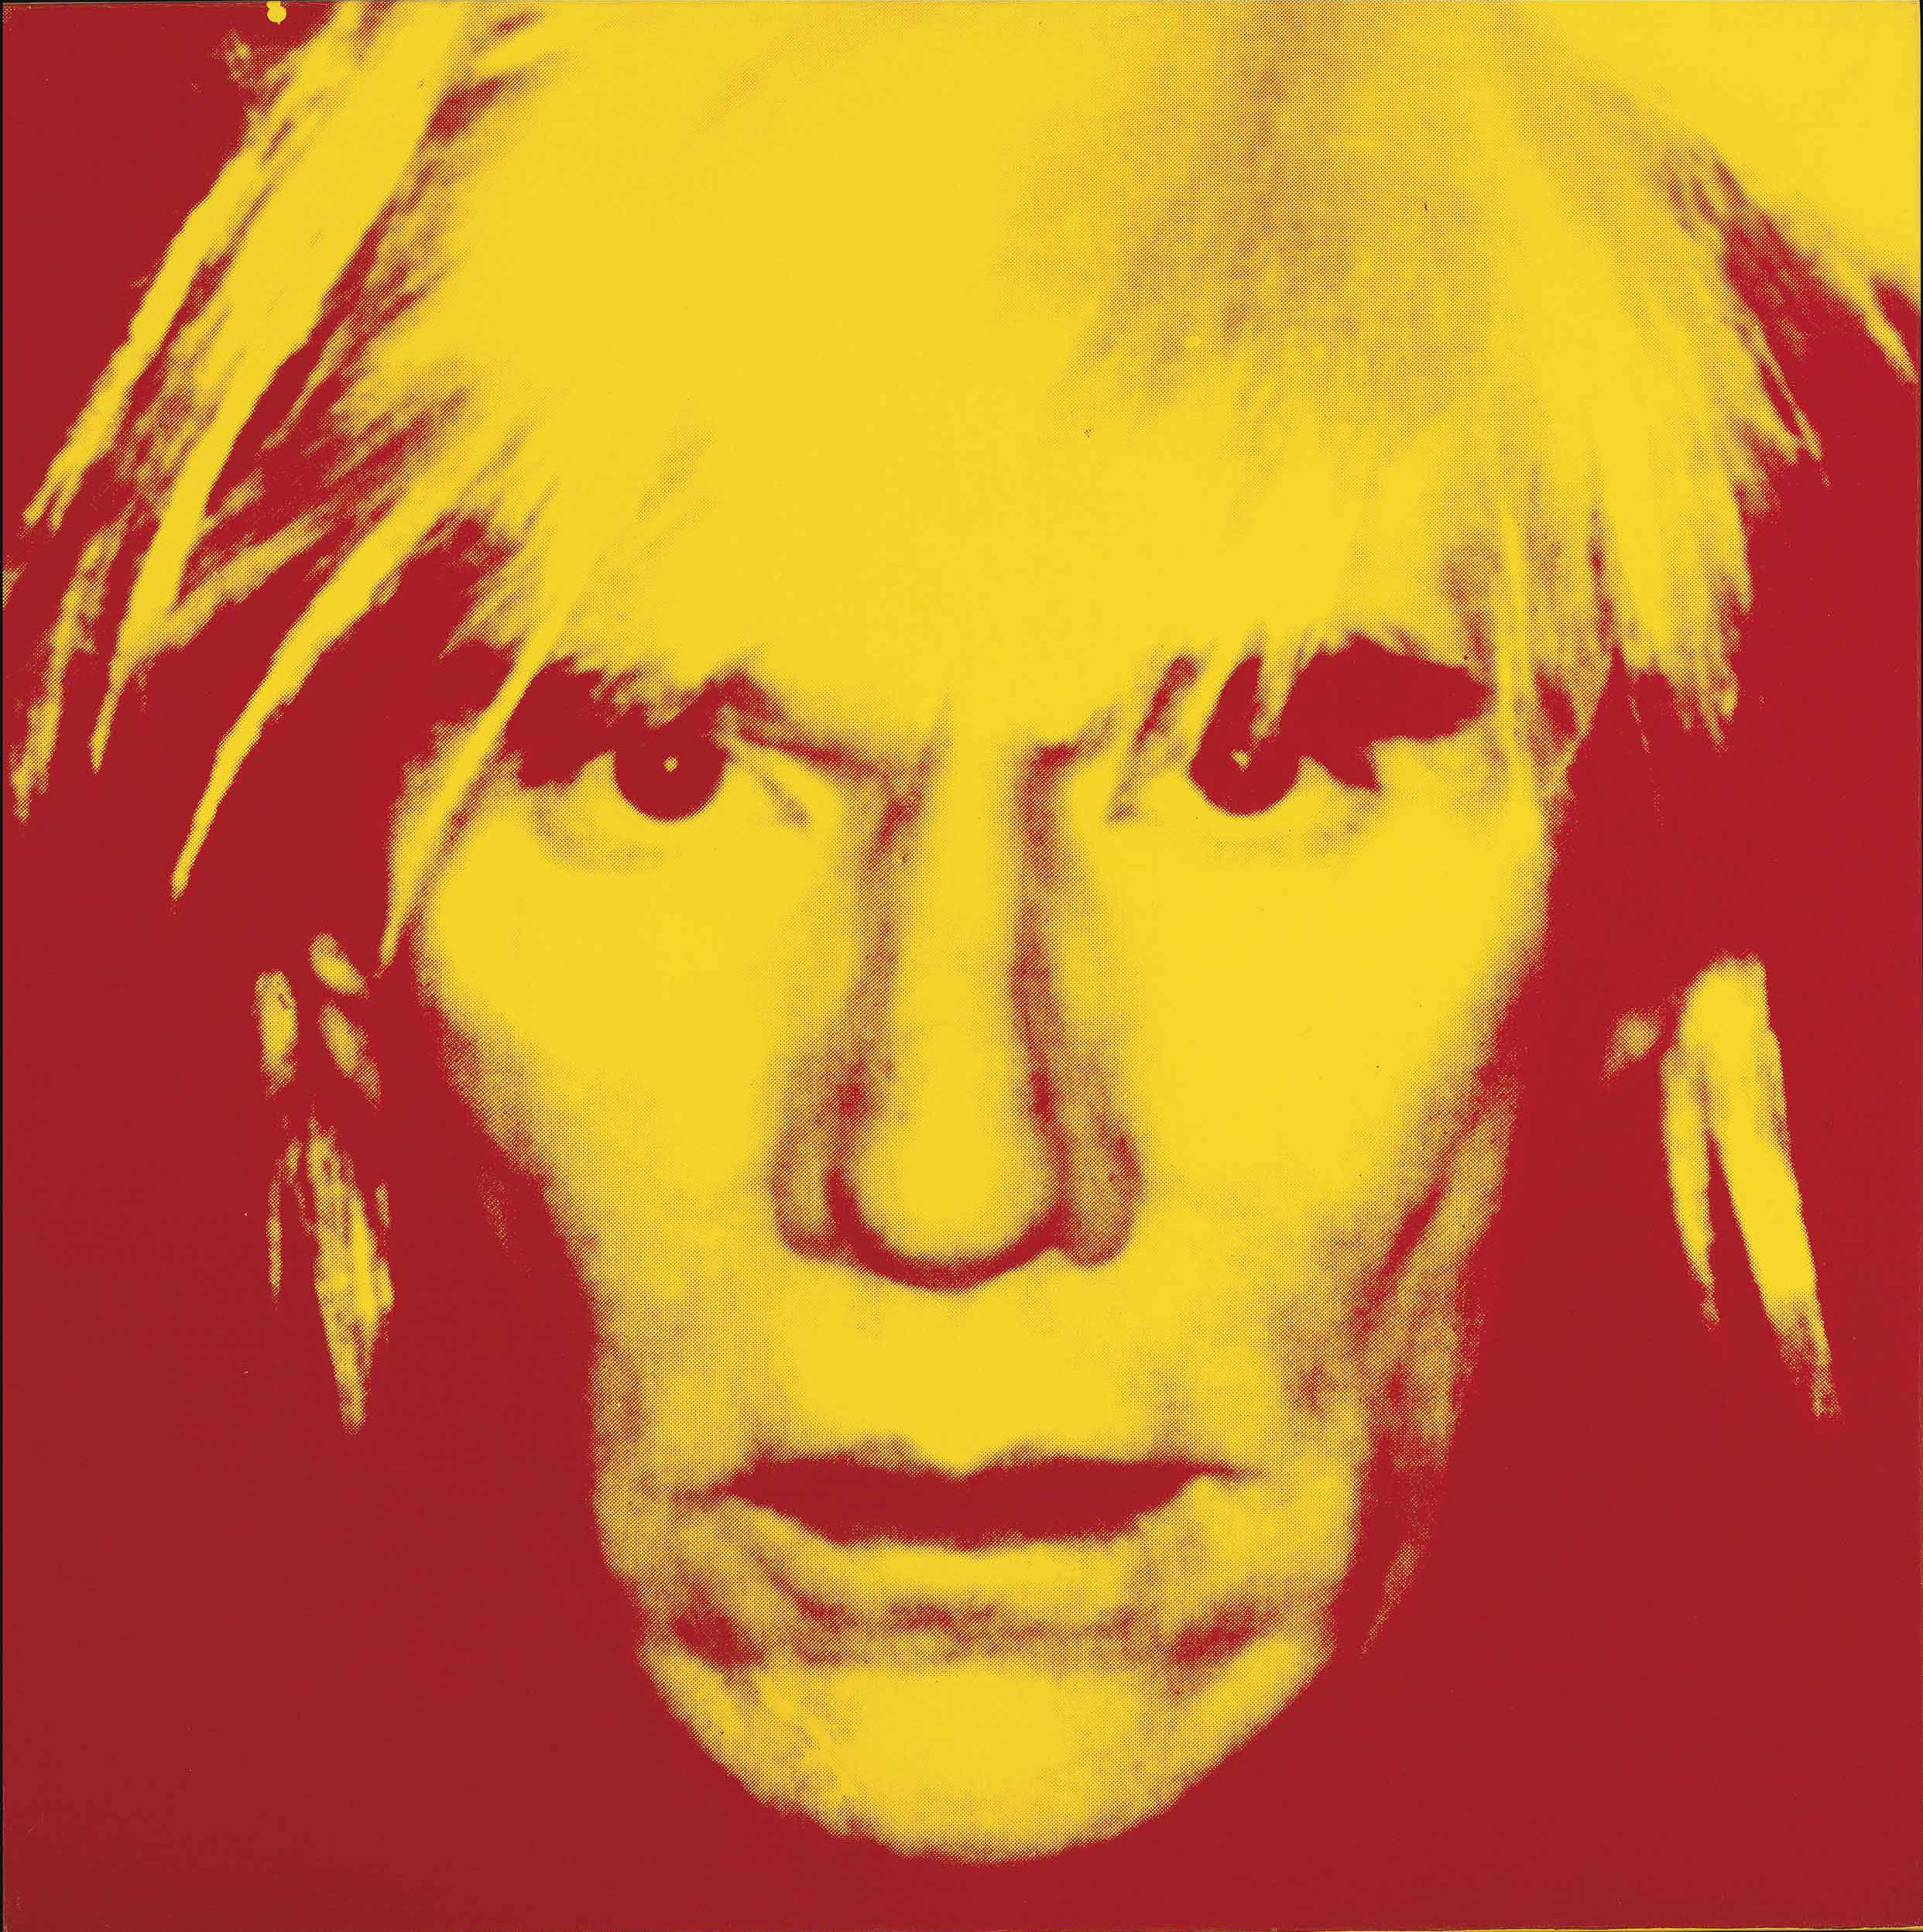 Andy Warhol 1928 1987 Self Portrait Fright Wig 1980s Paintings Christie S